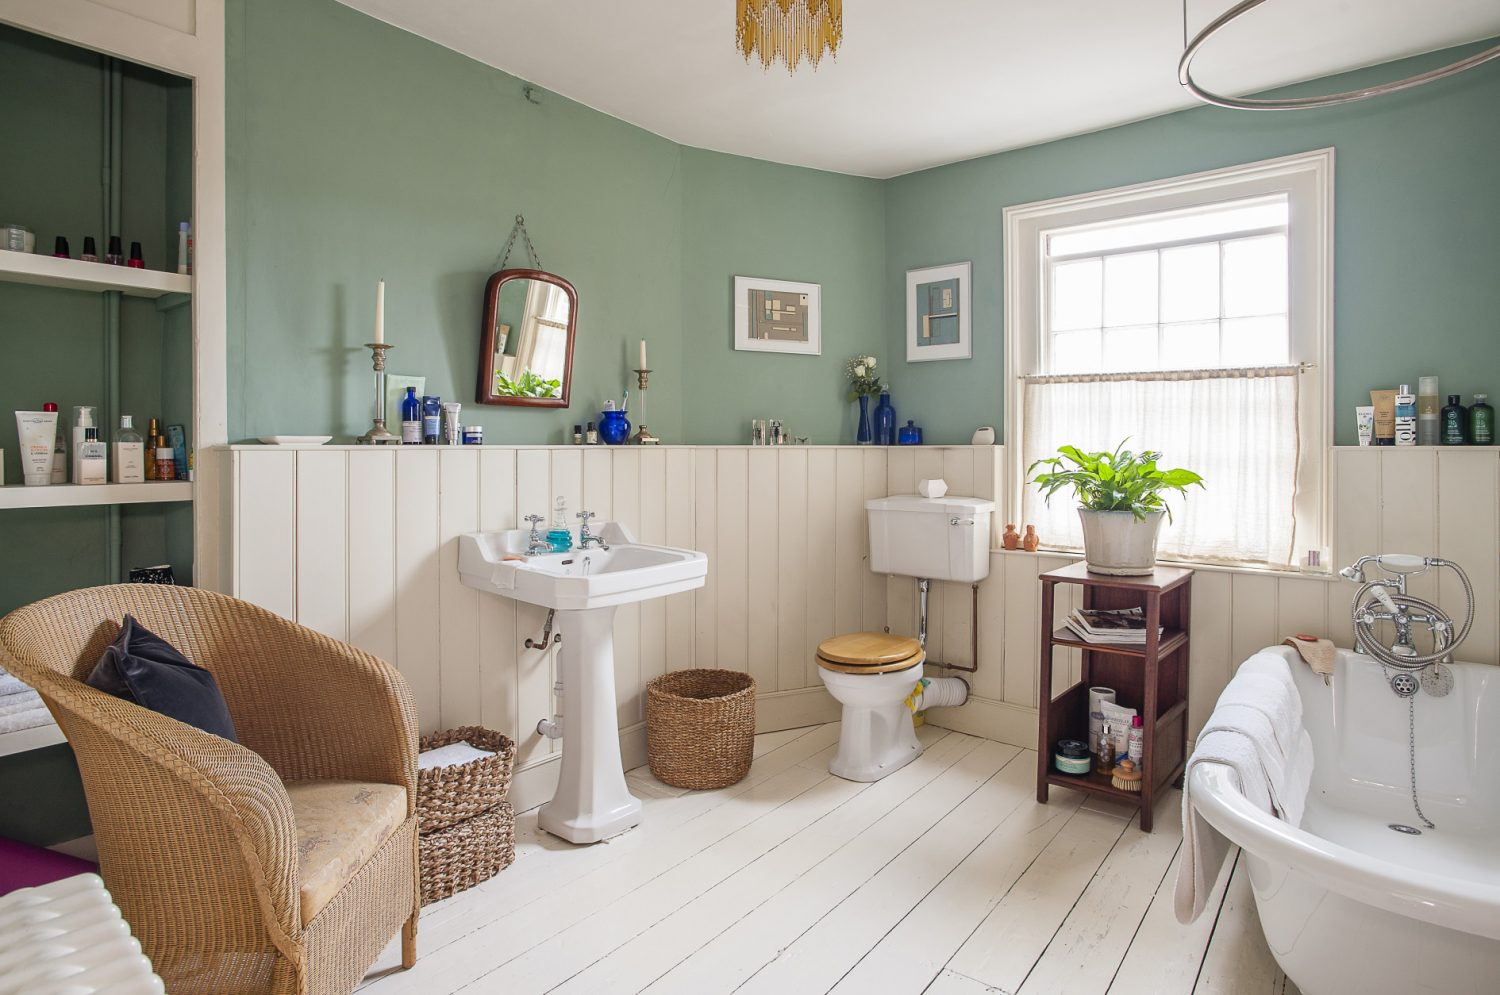 All the walls in the house are lime plastered, so the paint used had to be 'breathable'. The colour in the bathroom is Chappell Green by Farrow & Ball. The cream paint used throughout the house is Marbles by Earthborn. The plant is a peace lily